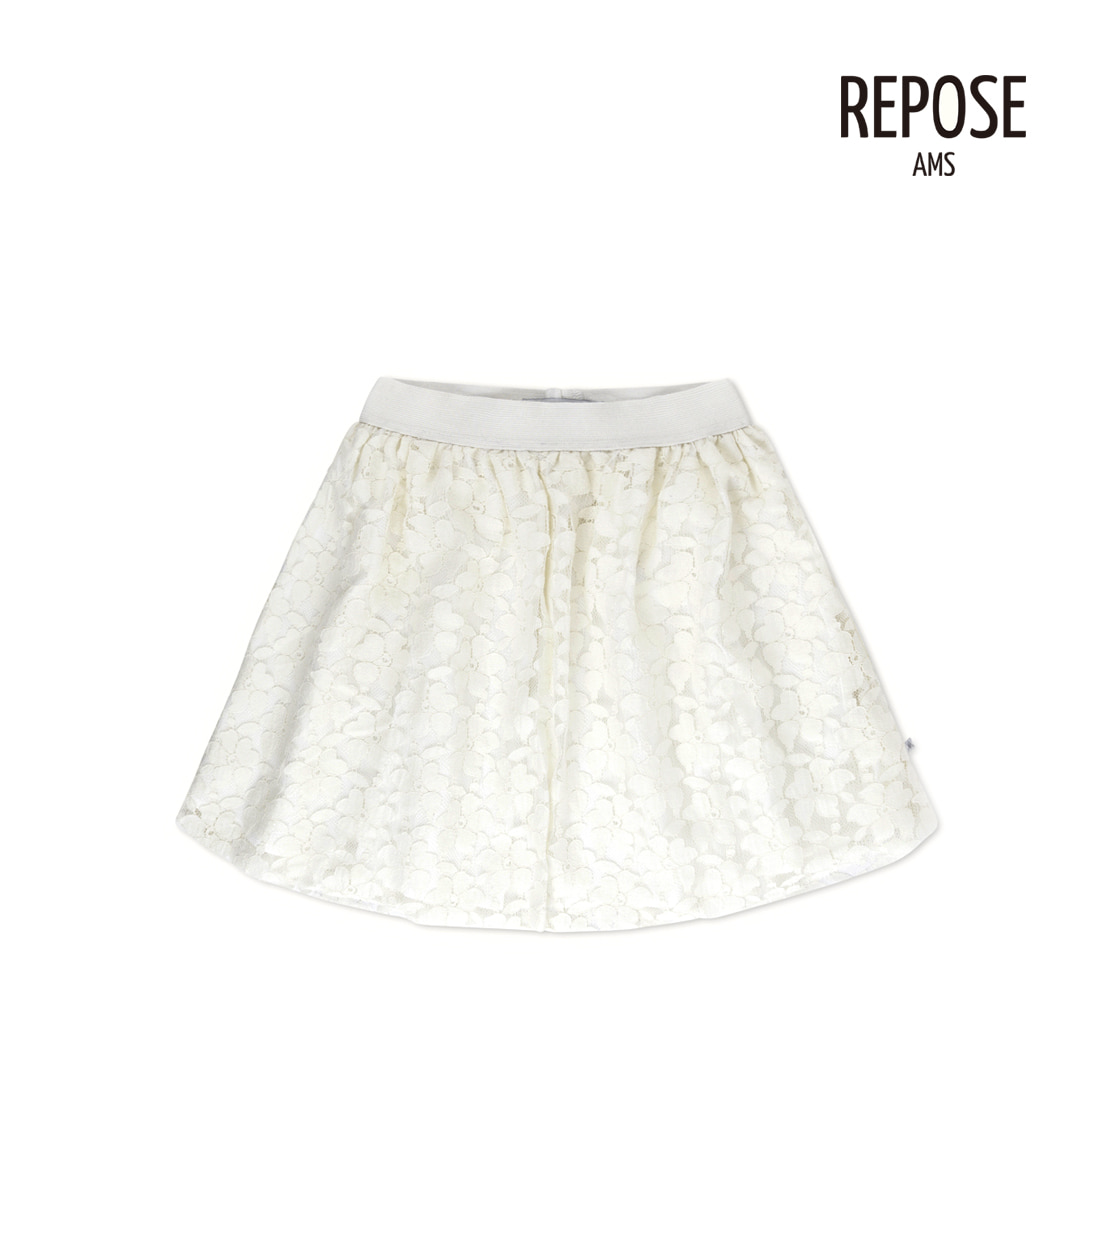 리포즈암스 MIDI LACE SKIRT / WHITE